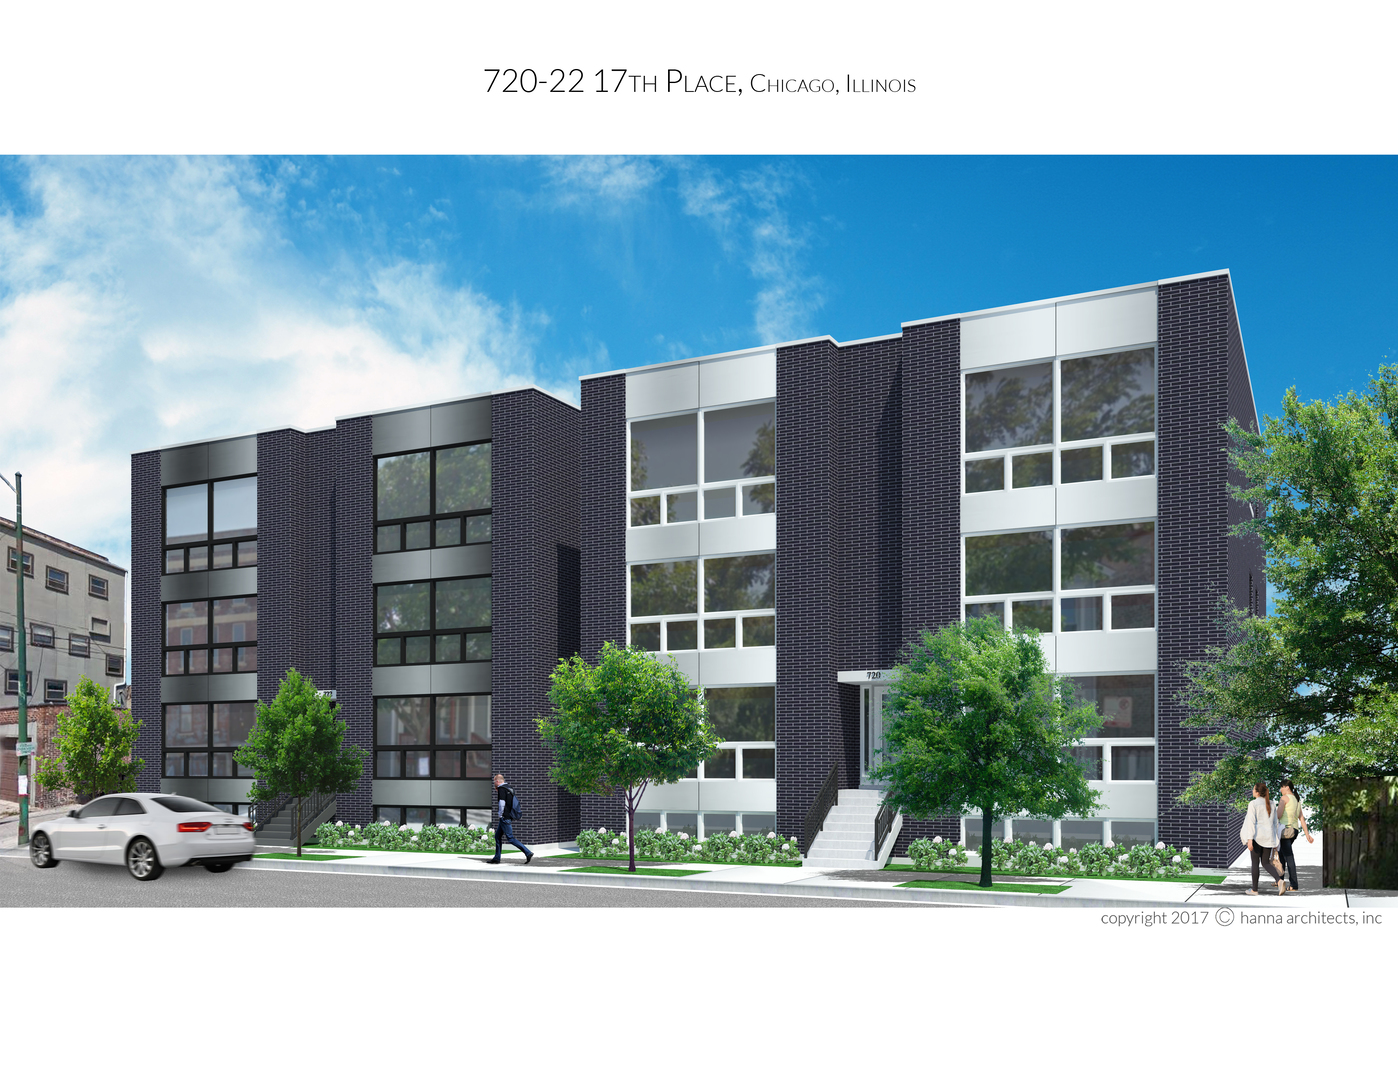 730 West 17th Place, Chicago, IL 60616